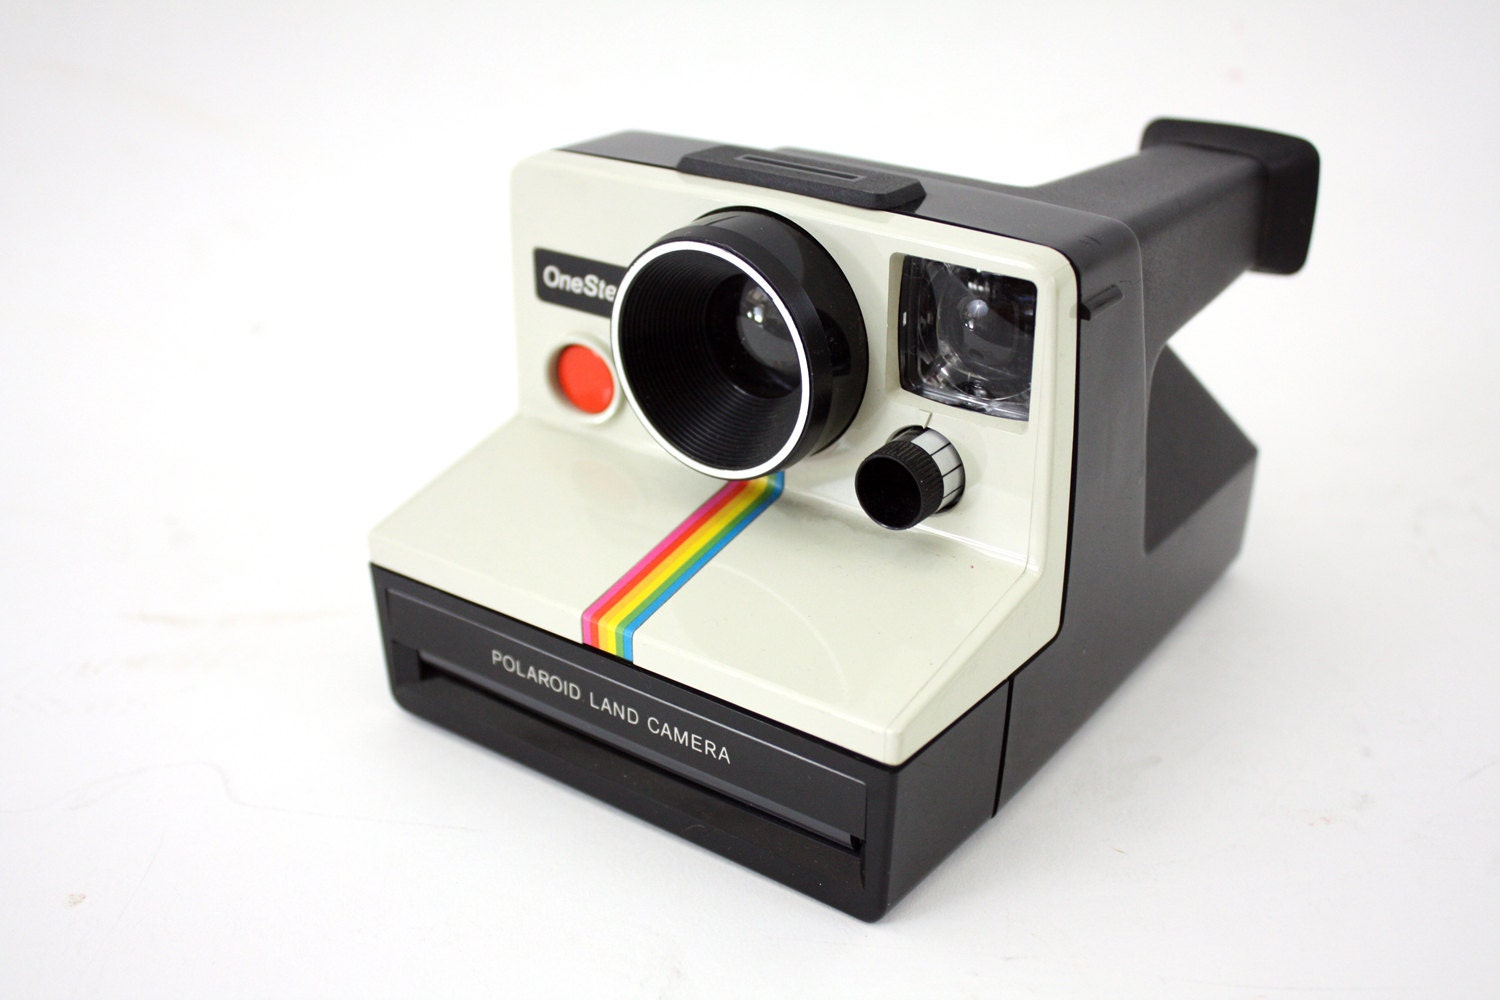 Home Decor Flash Sale Vintage Polaroid Camera Collectible One Step Land Camera